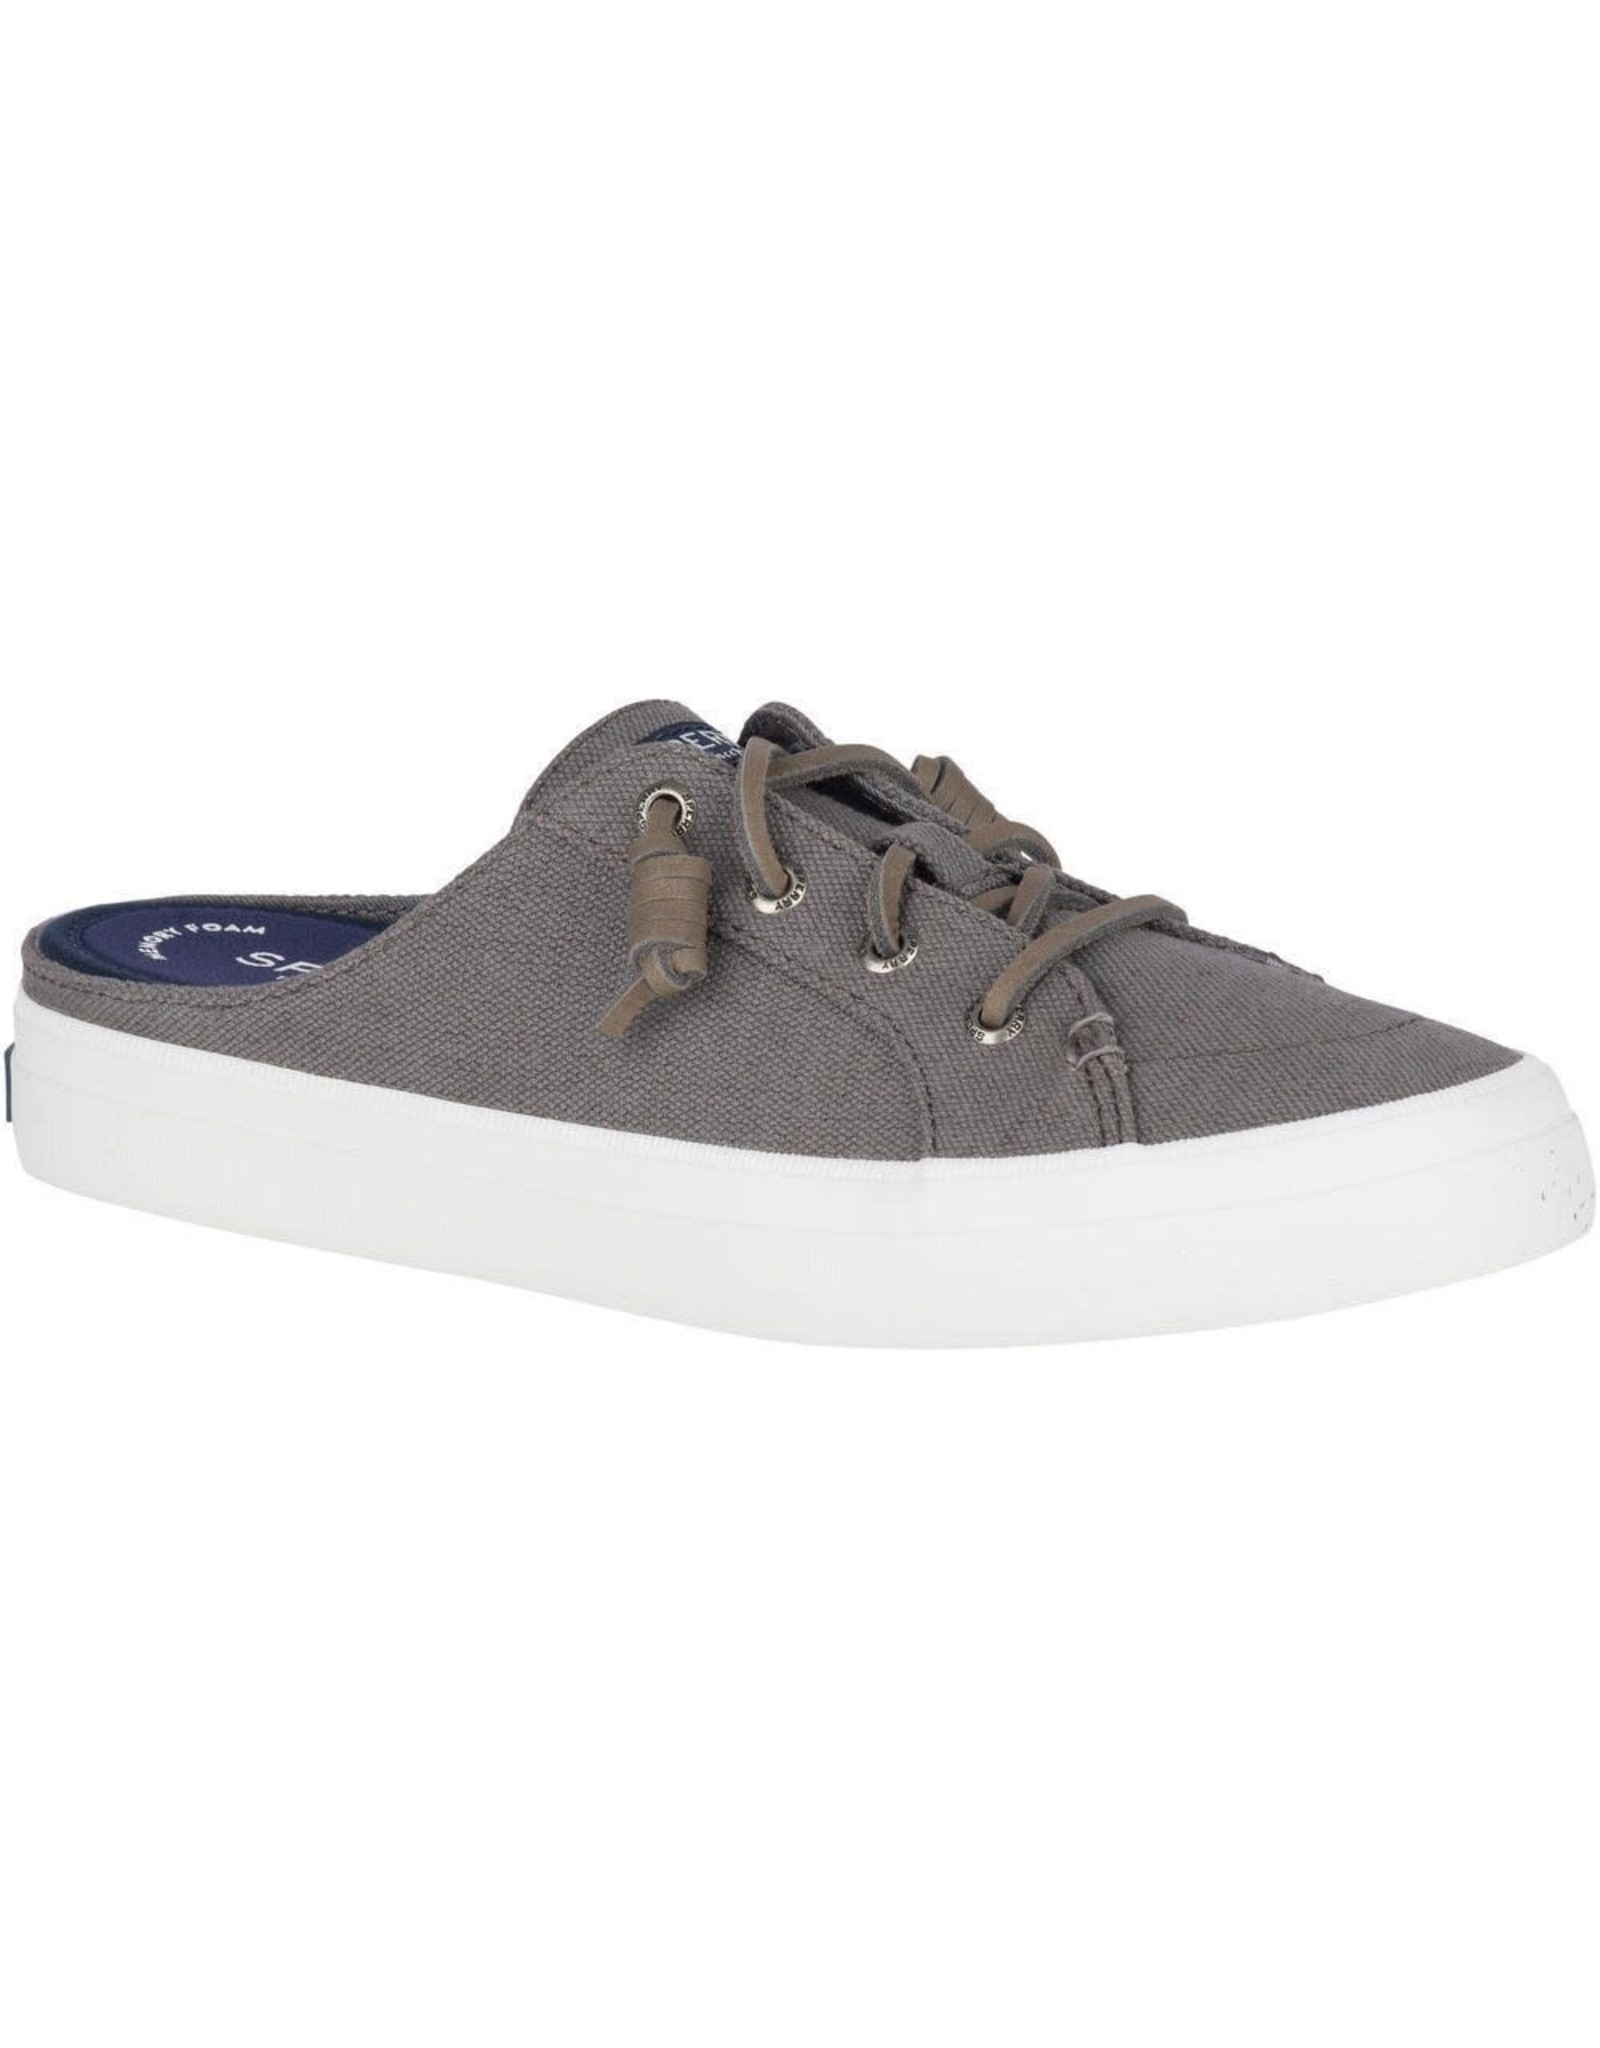 Sperry Crest Vibe Mule